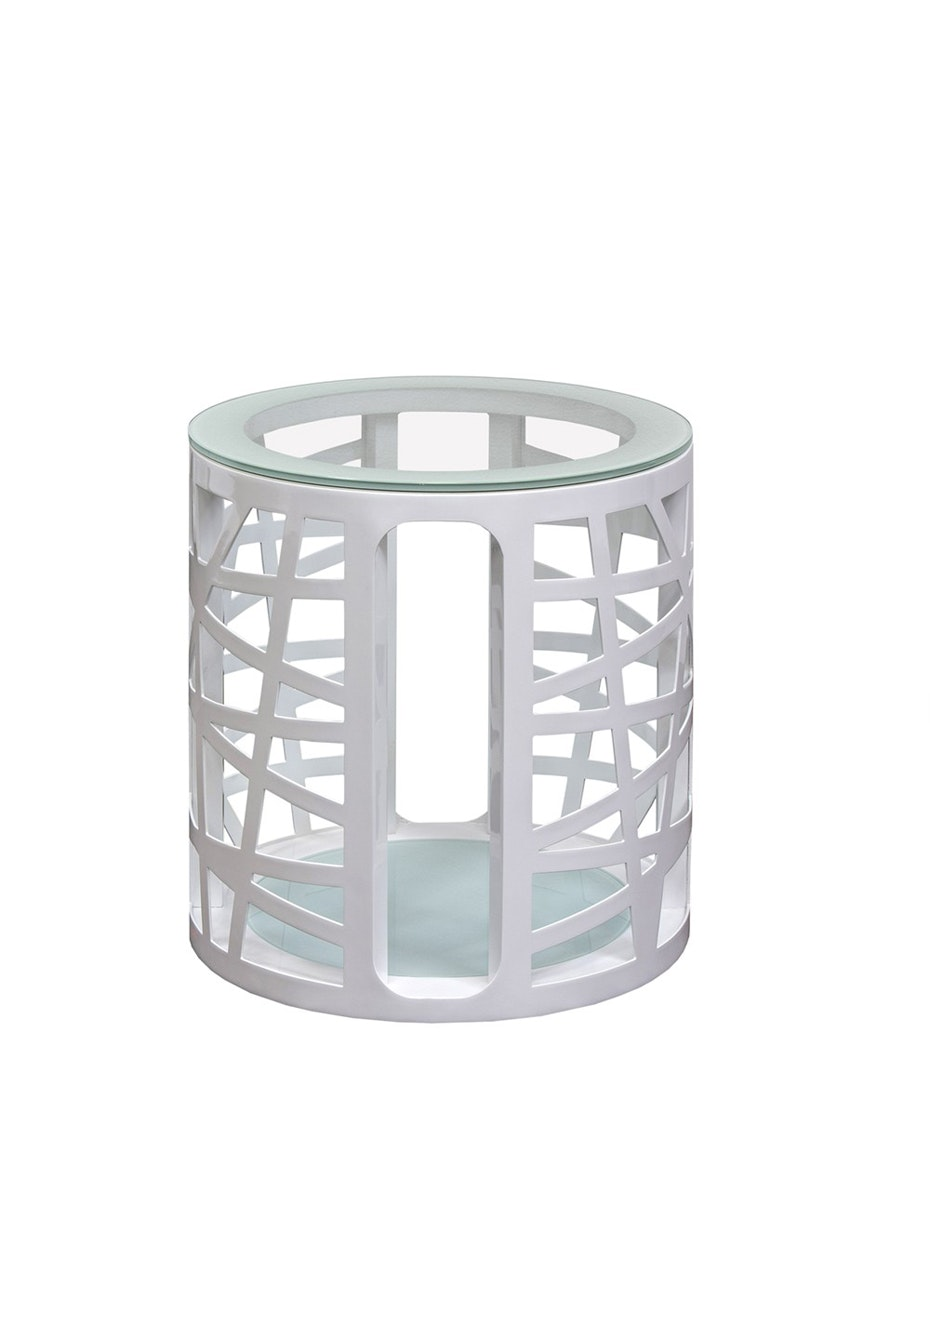 FbD - Cage White Lamp Table w/glass Top  - White Metal and Glass